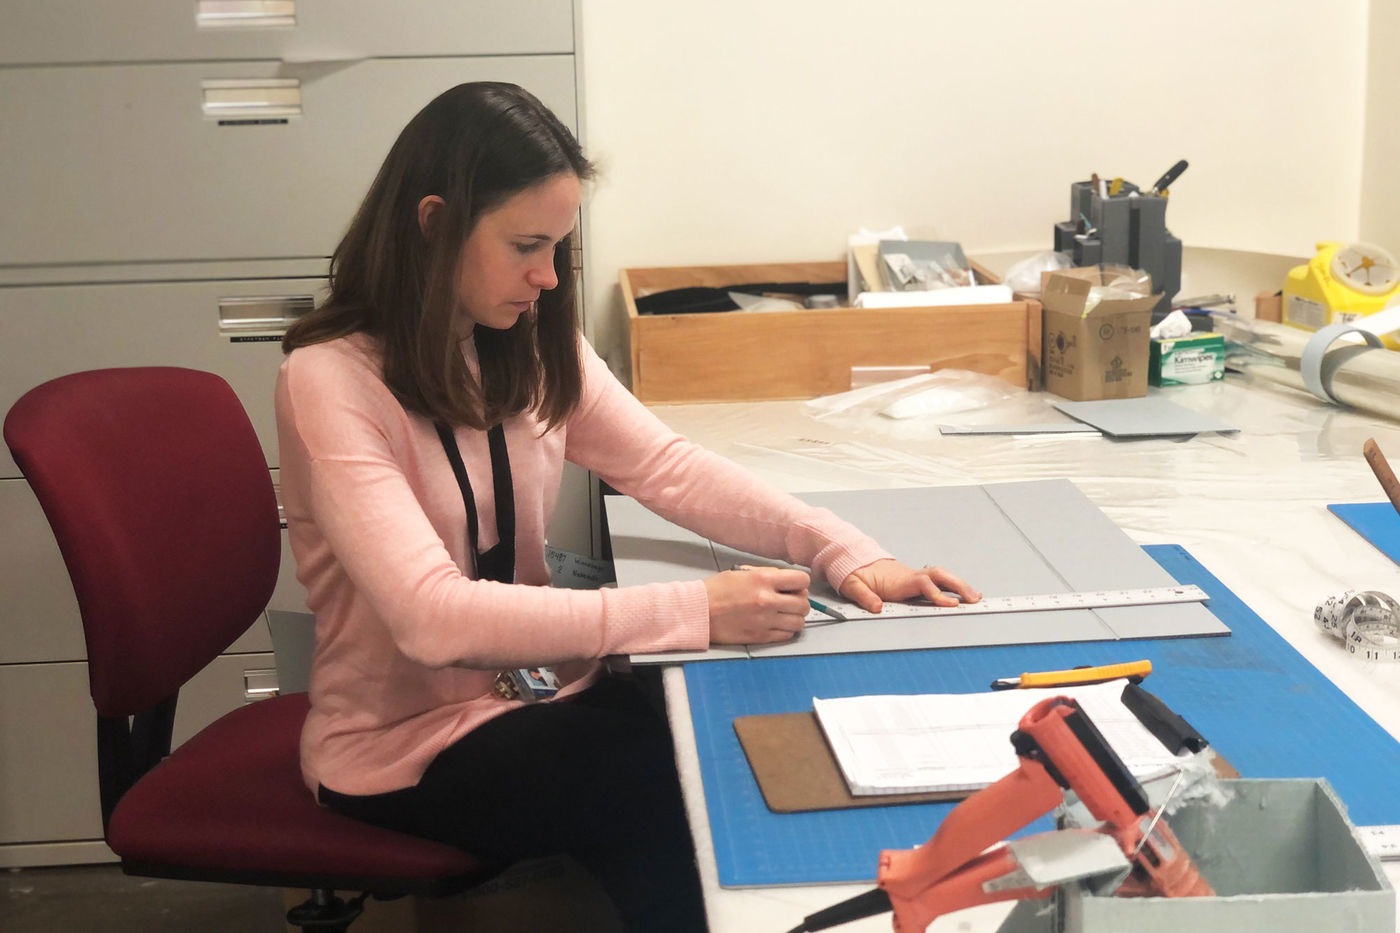 A woman sits at a desk and uses a rule. Other supplies like a hot glue gun and measuring tab sit on the desk.